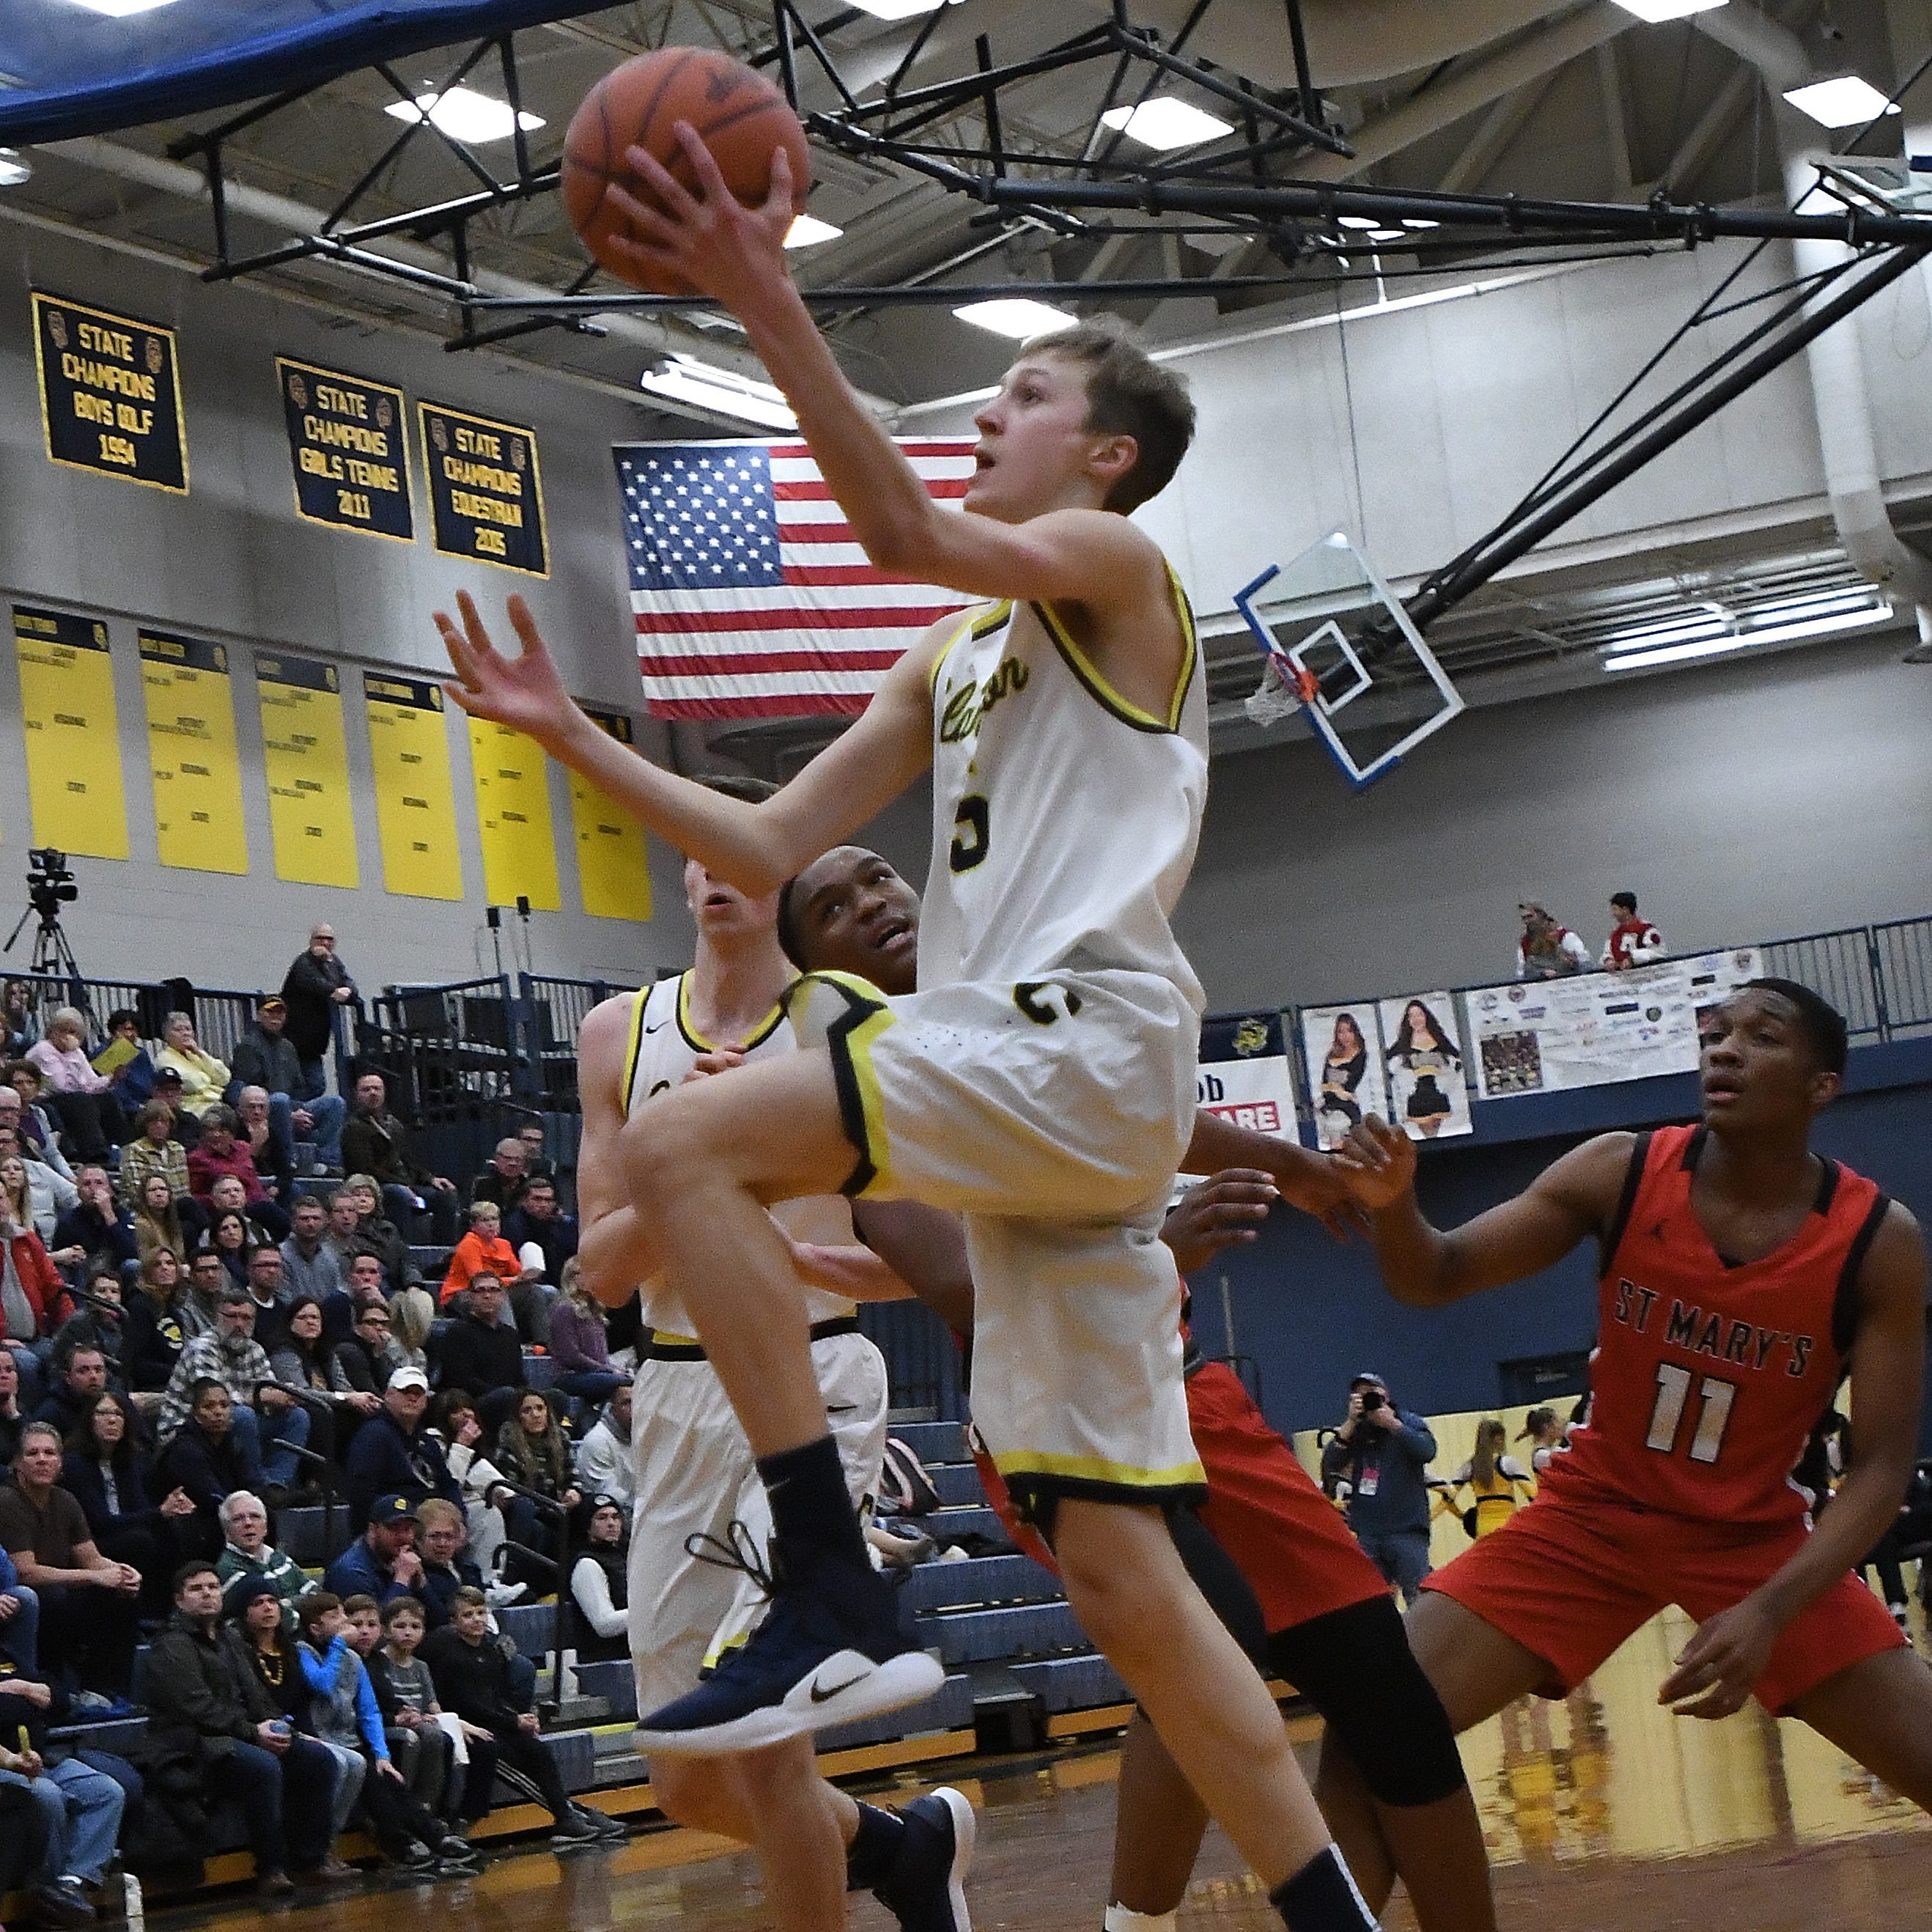 Friday's preps: Fletcher Loyer excels in Clarkston's win over Wayne